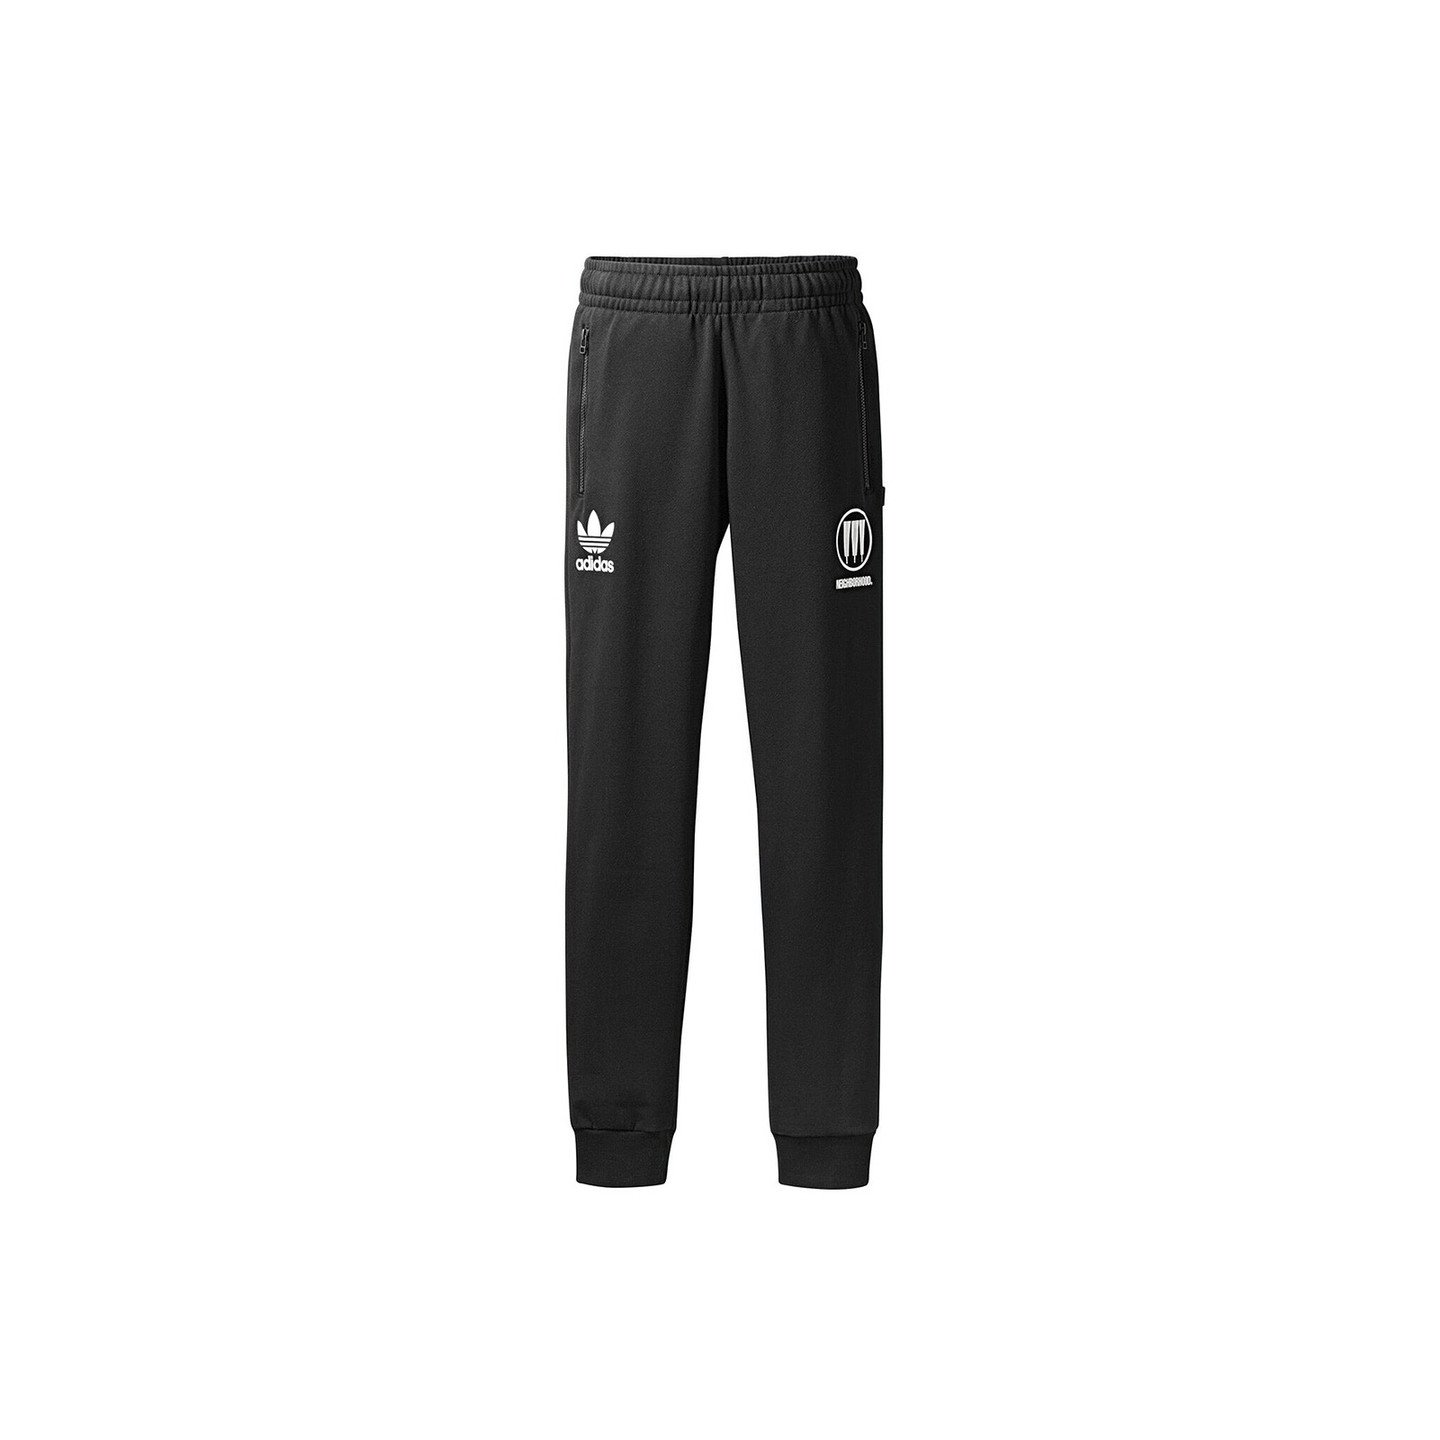 Adidas Neighborhood Track Pants Black / White CD7731